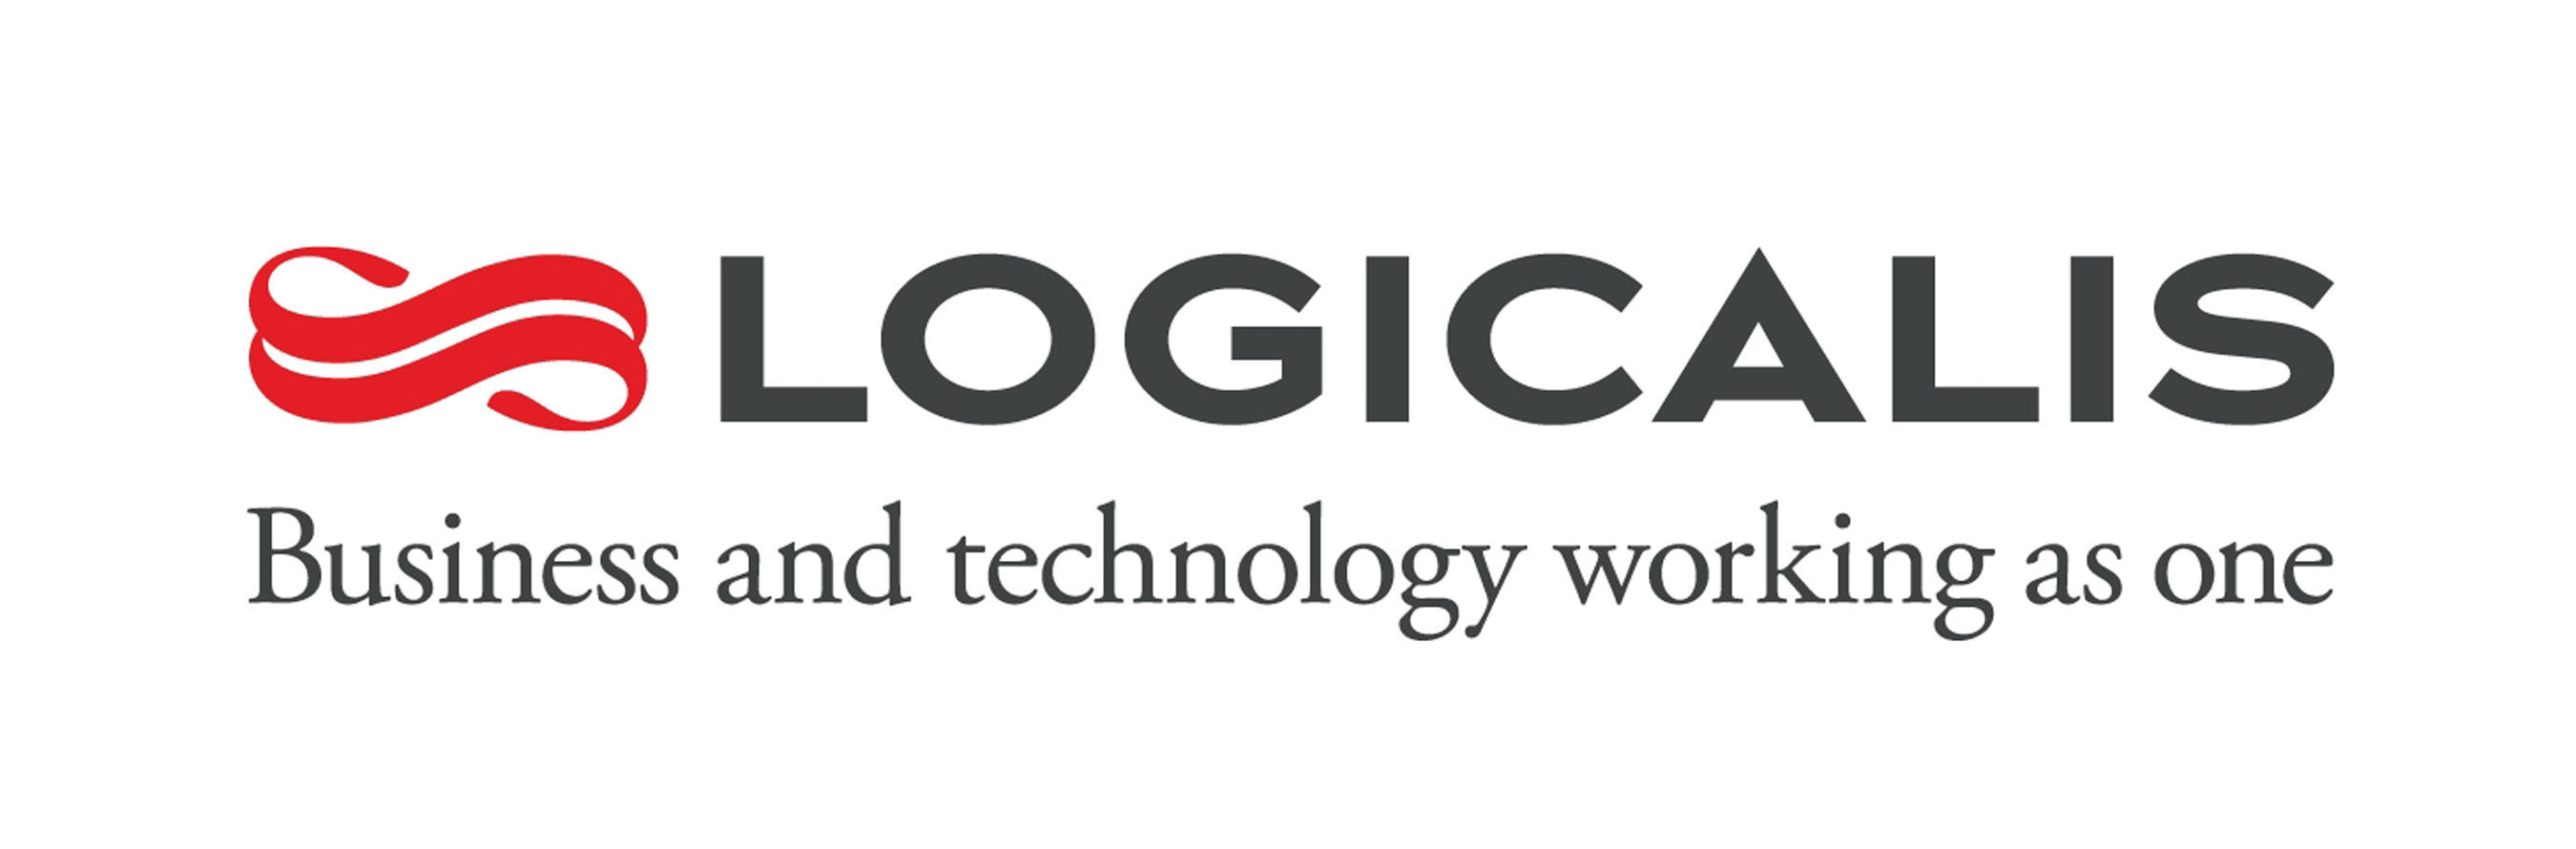 Logicalis Asks CIOs: Share Your Greatest Pressures and Priorities for Third Annual Global Study